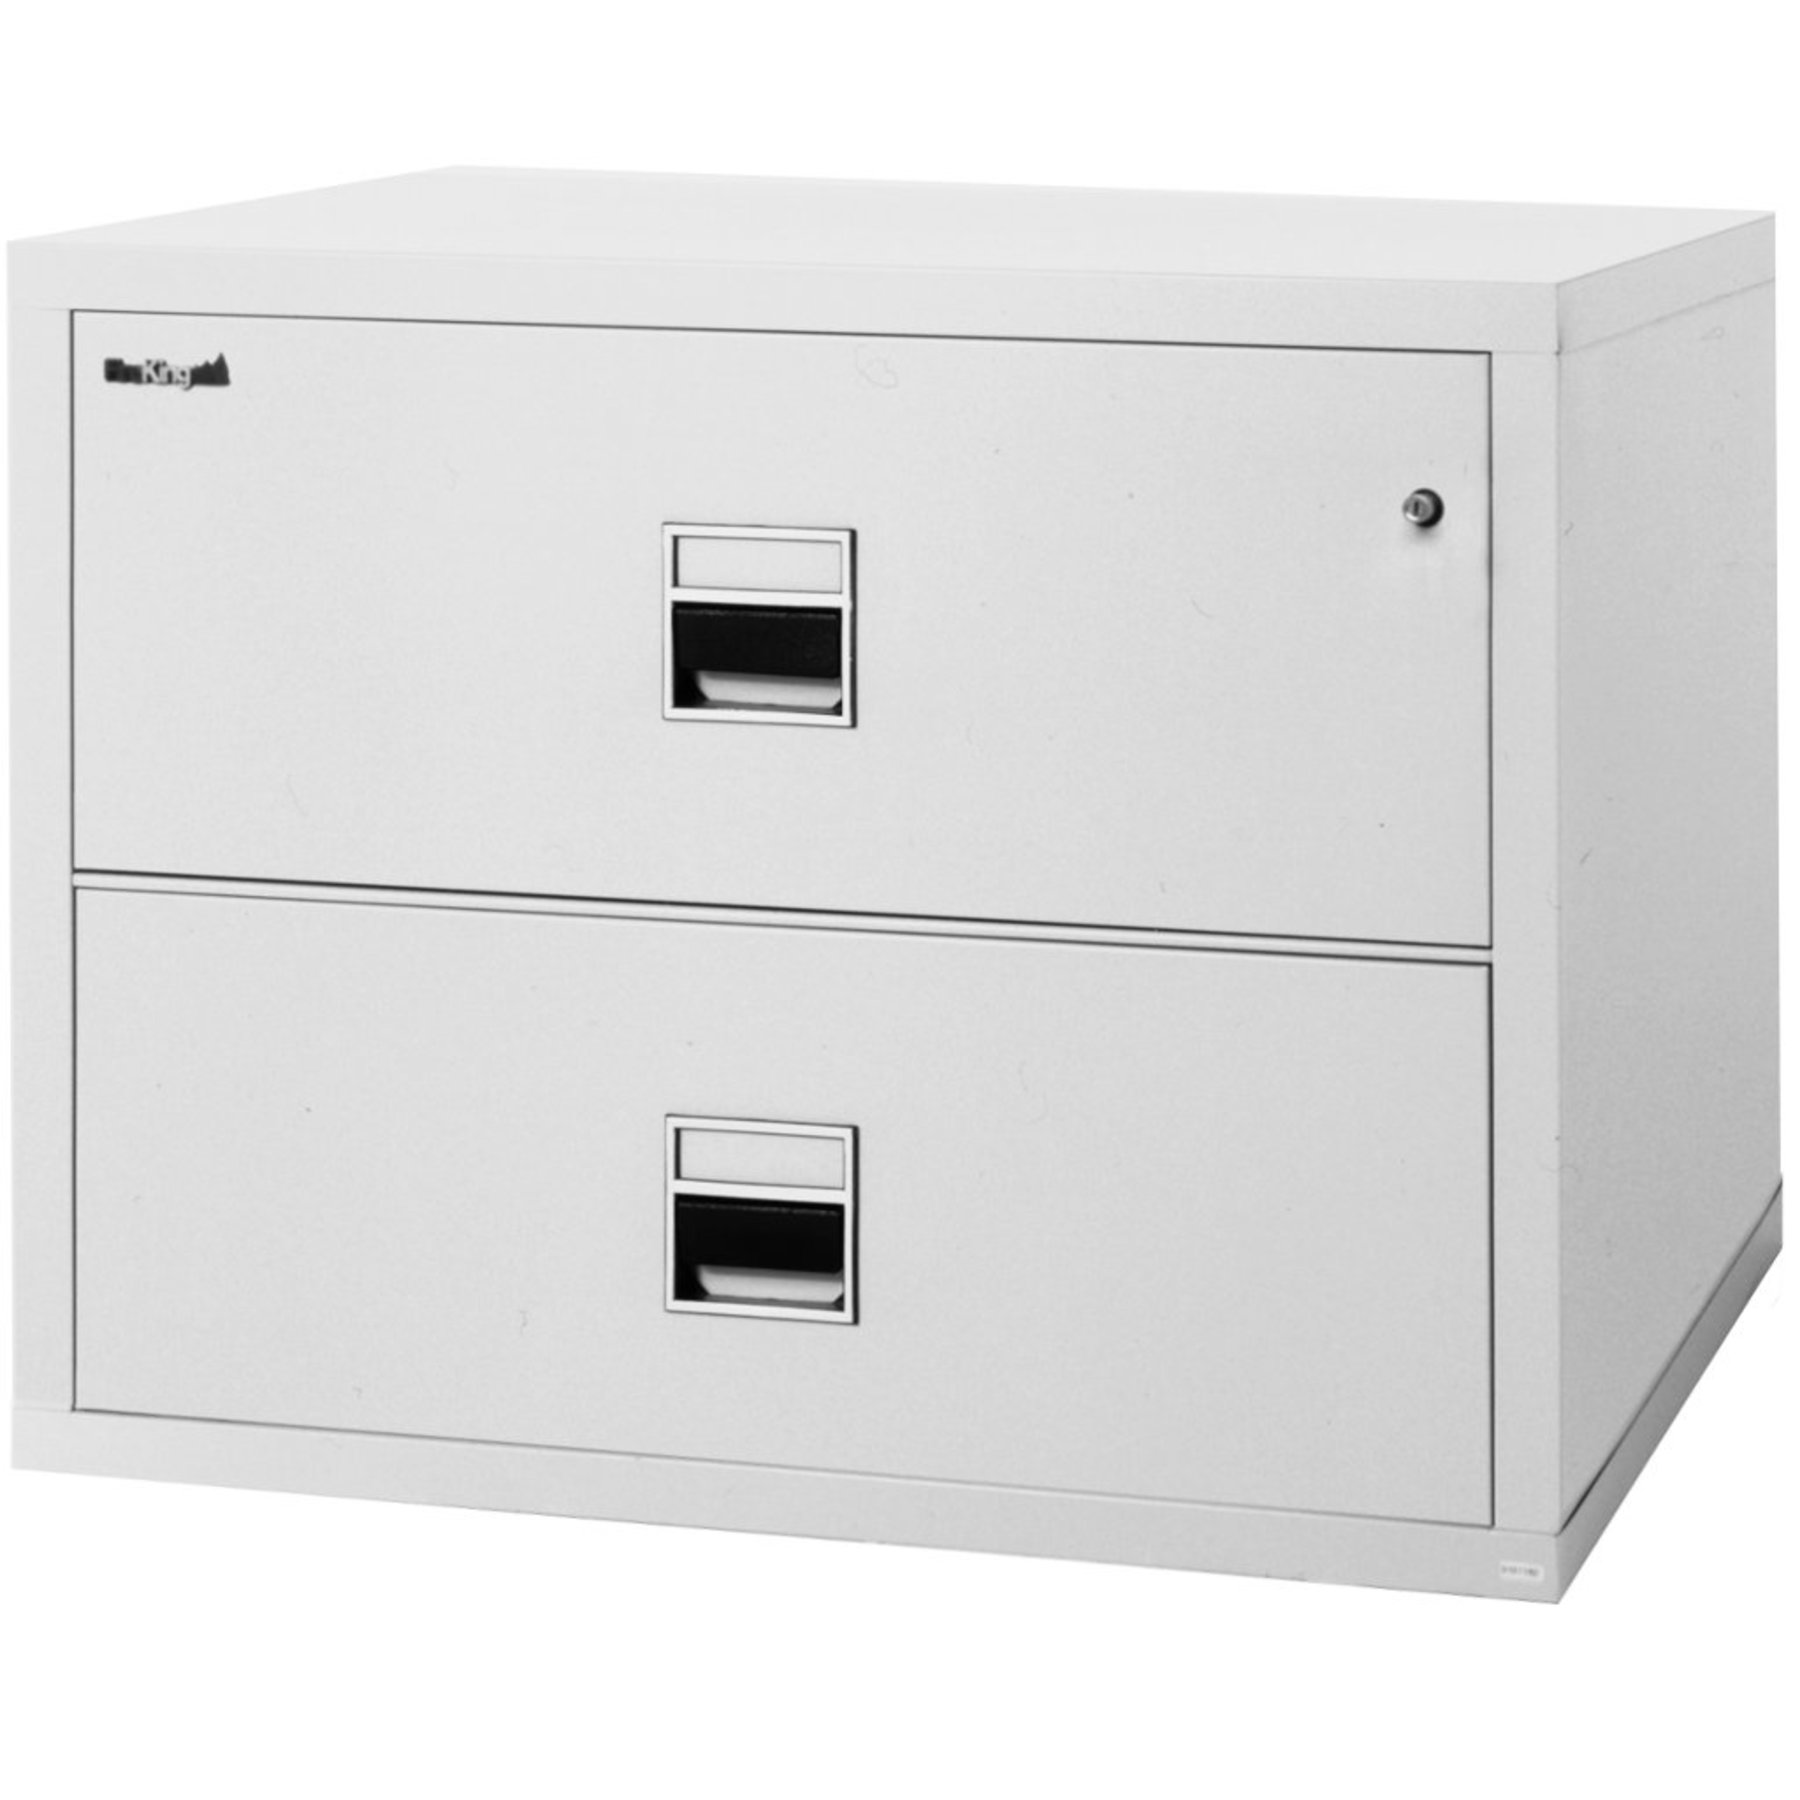 Lovely FireKing Lateral MLT2 Fire Resistant File Cabinet